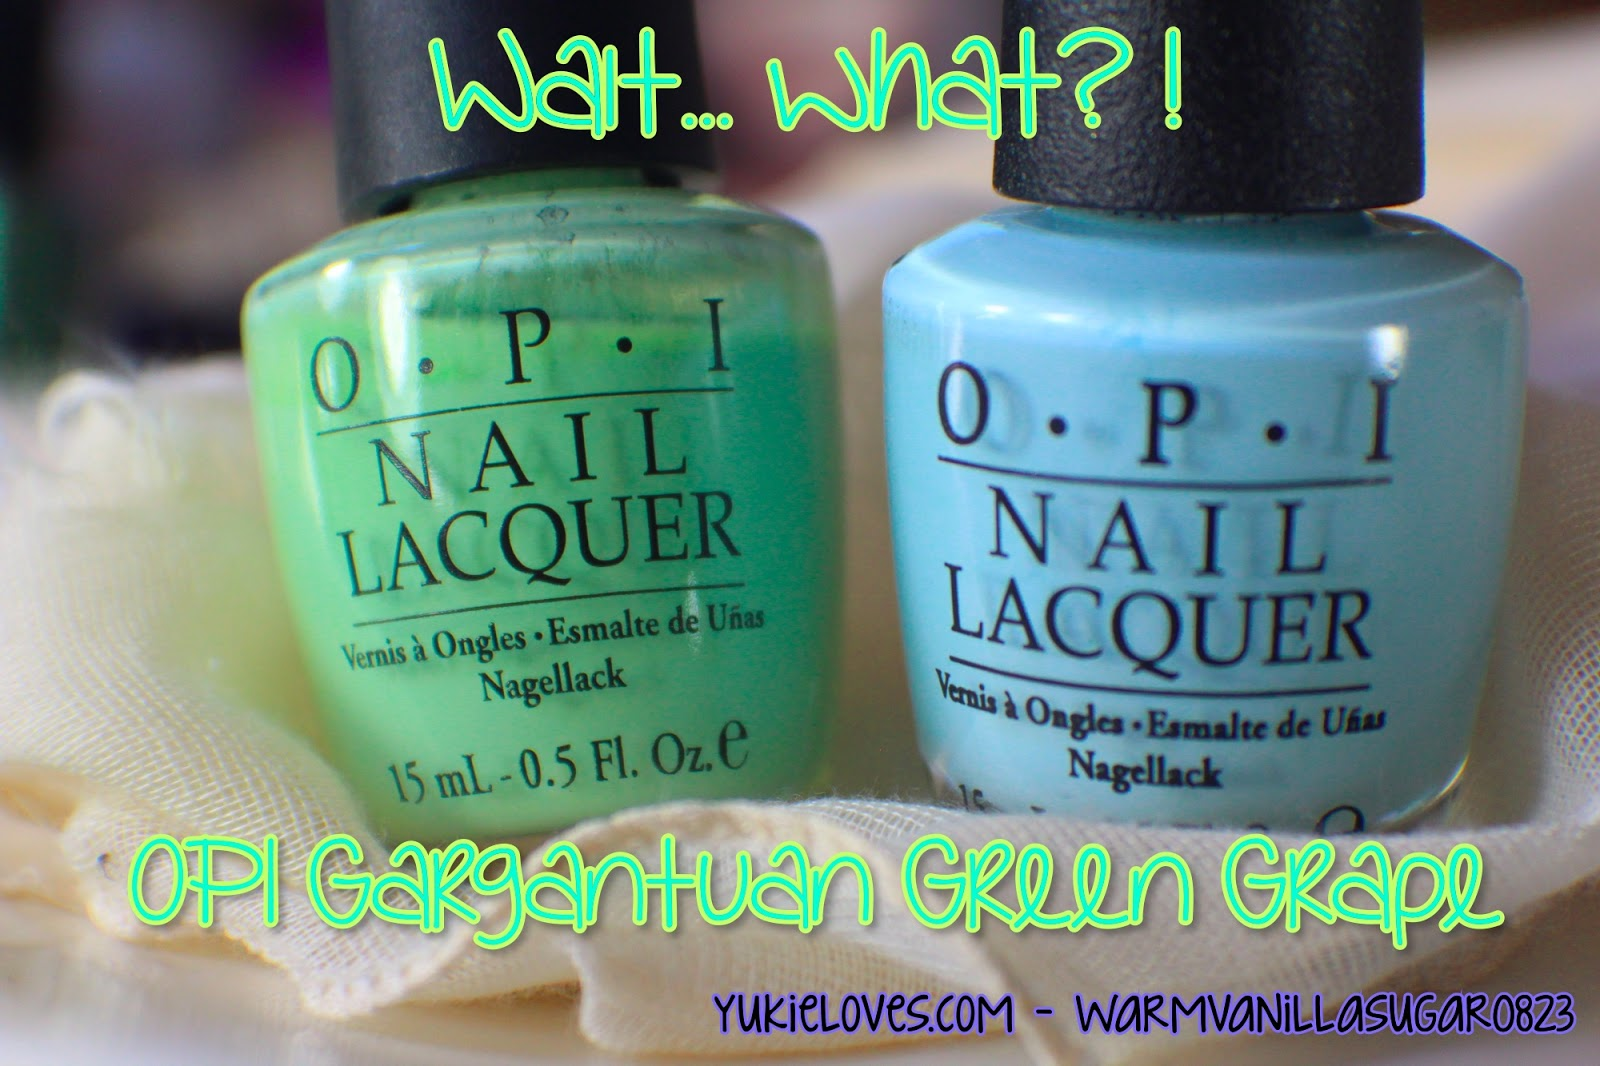 Wait…What?! OPI Gargantuan Green Grape – yukieloves.com